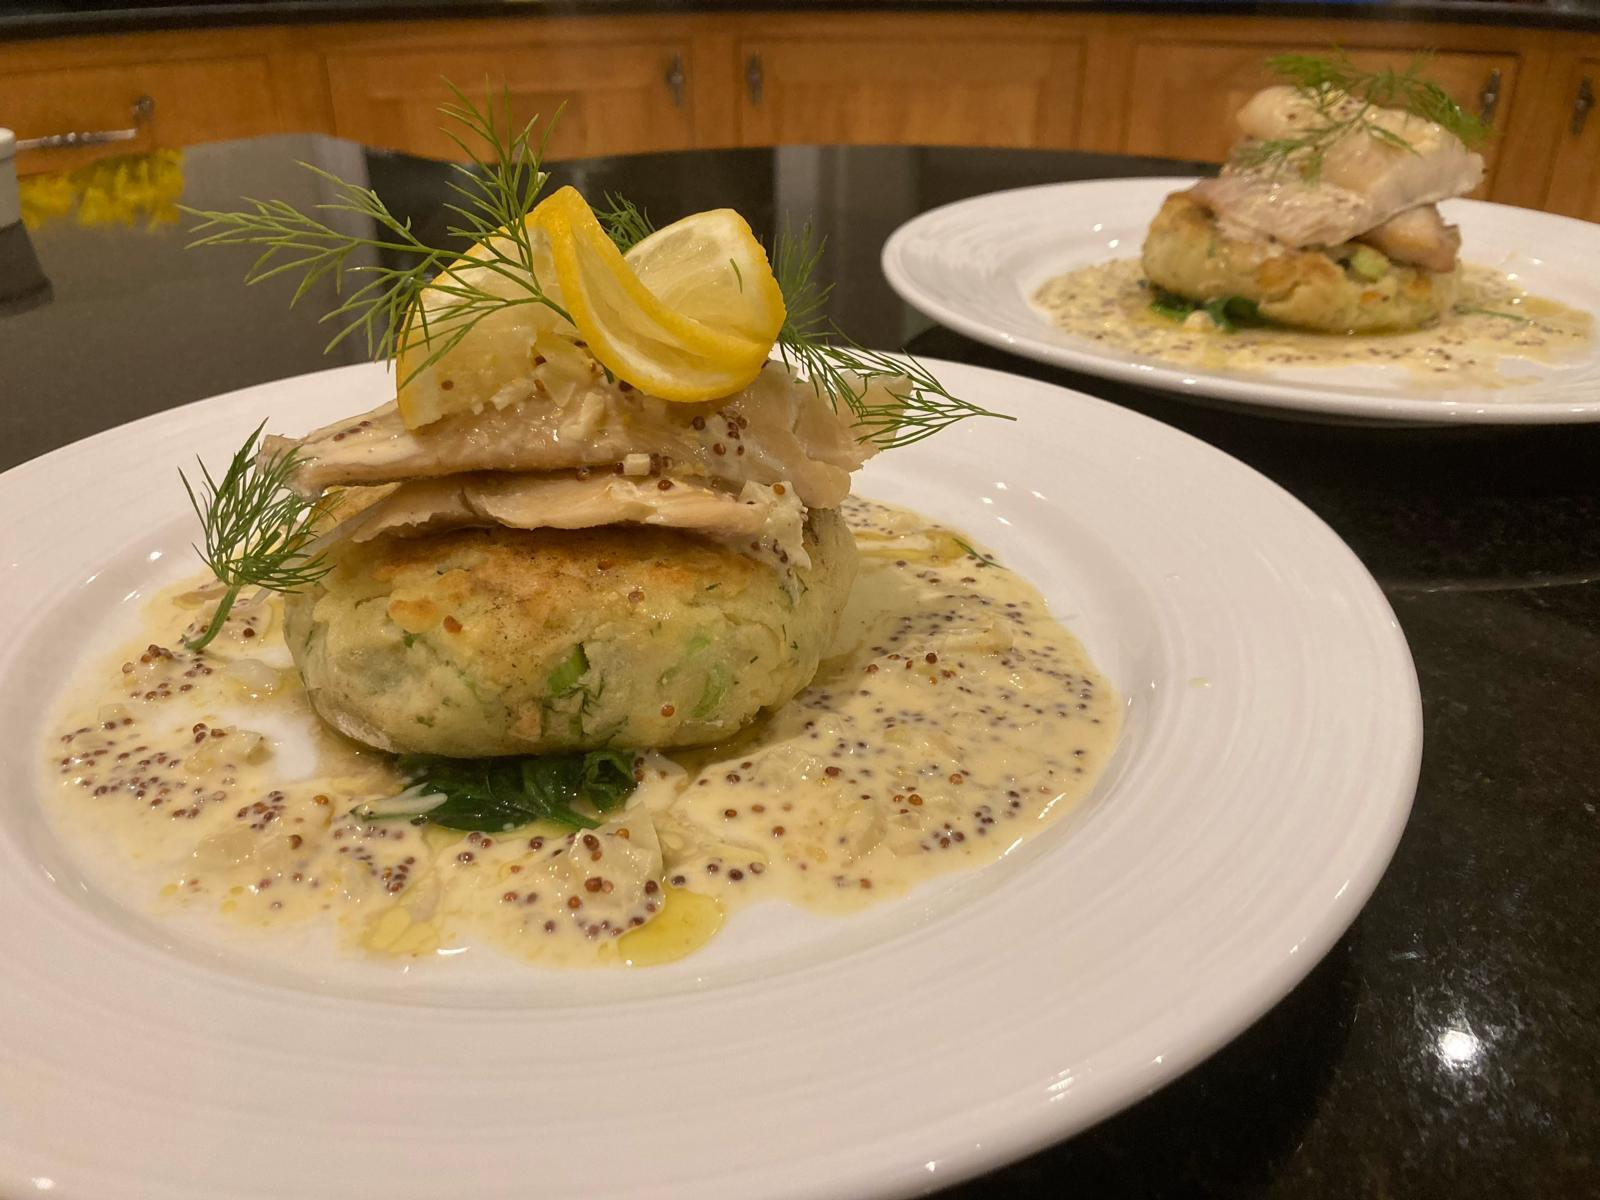 Smoked Haddock with a Dill & Spring Onion Potato Farl, Wilted Spinach and Wholegrain Mustard Cream